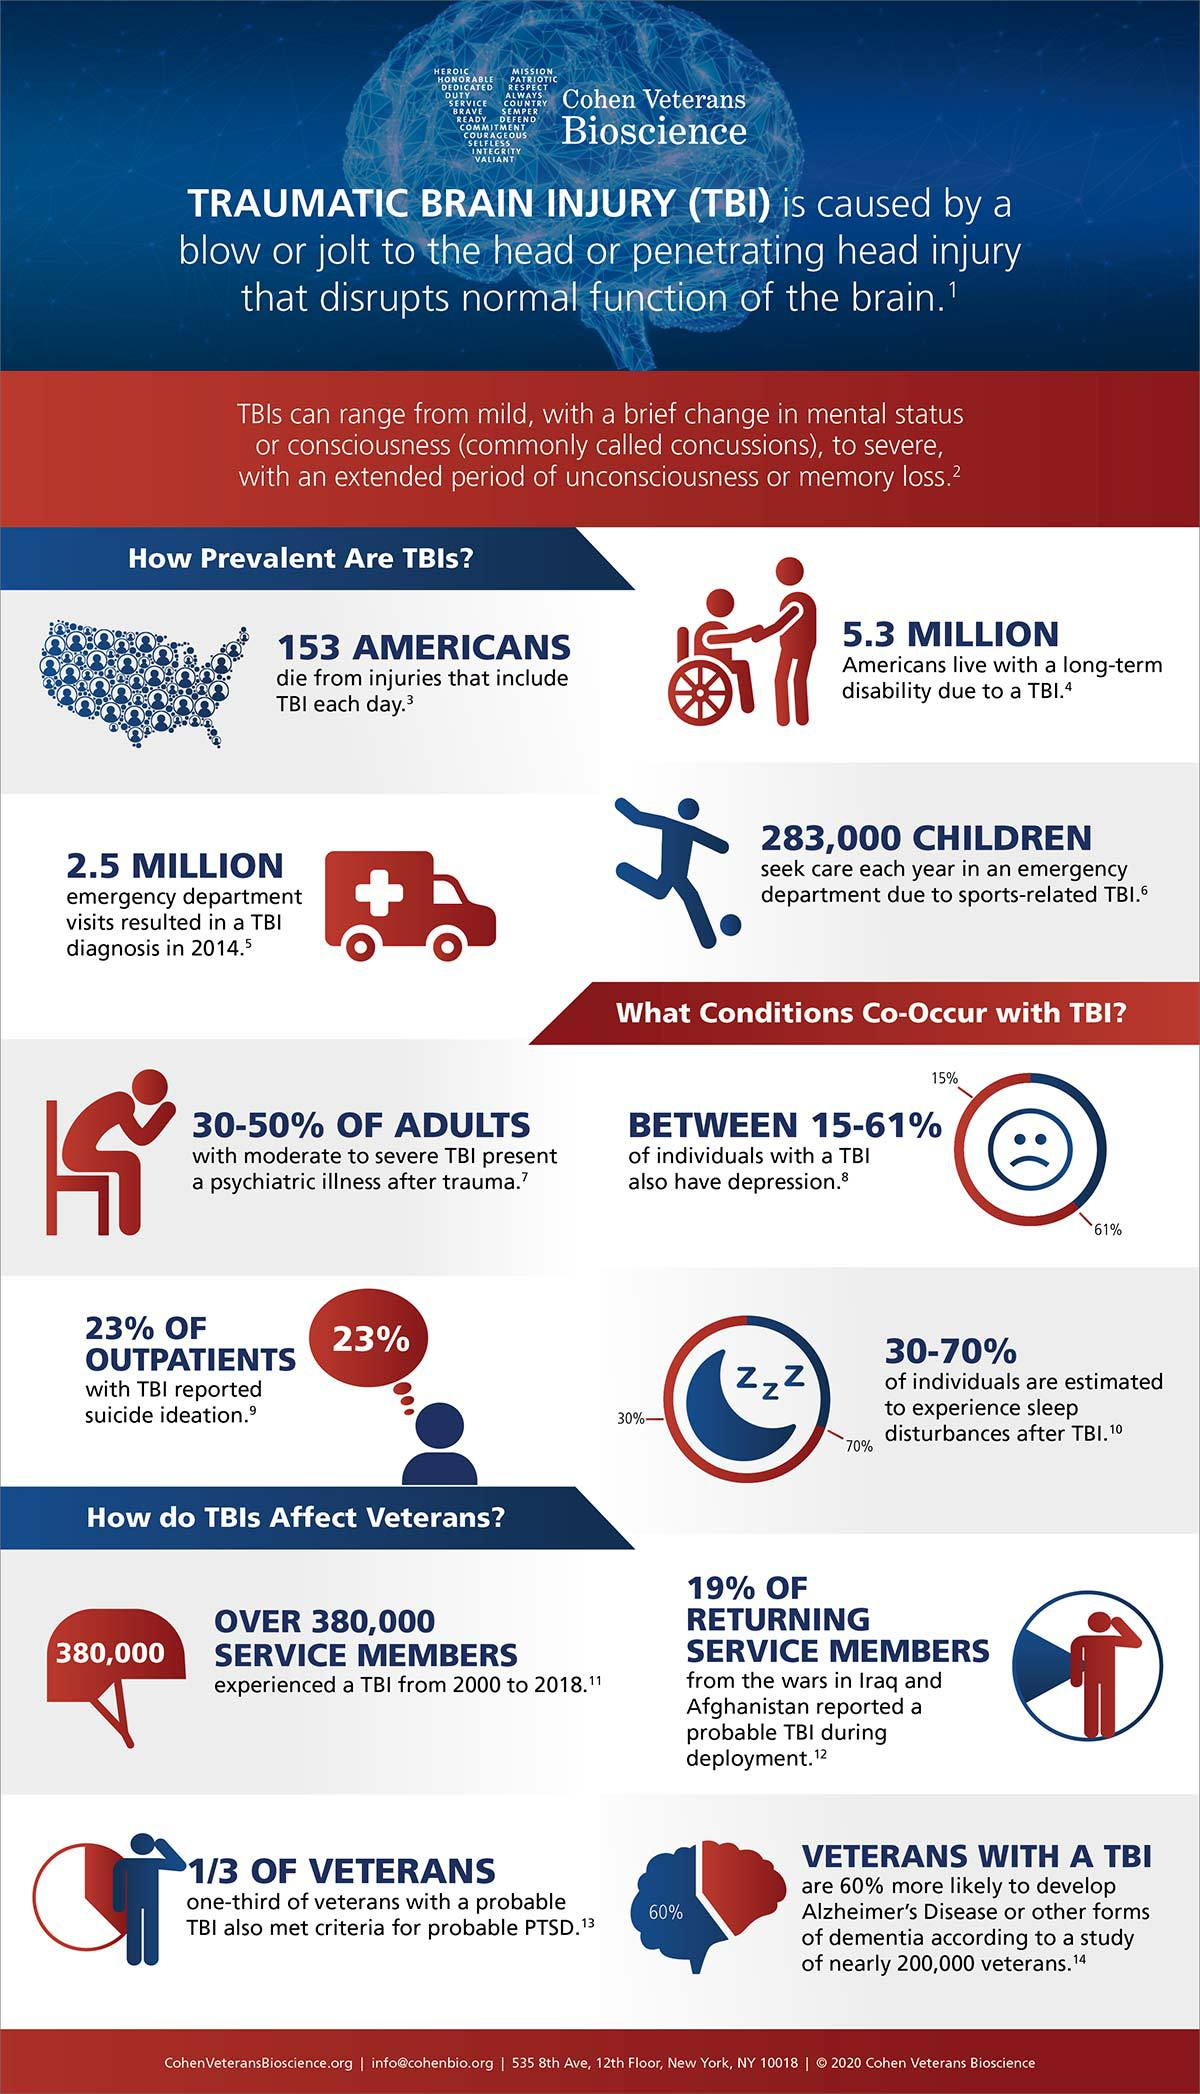 Traumatic Brain Injury Infographic by Cohen Veterans Bioscience